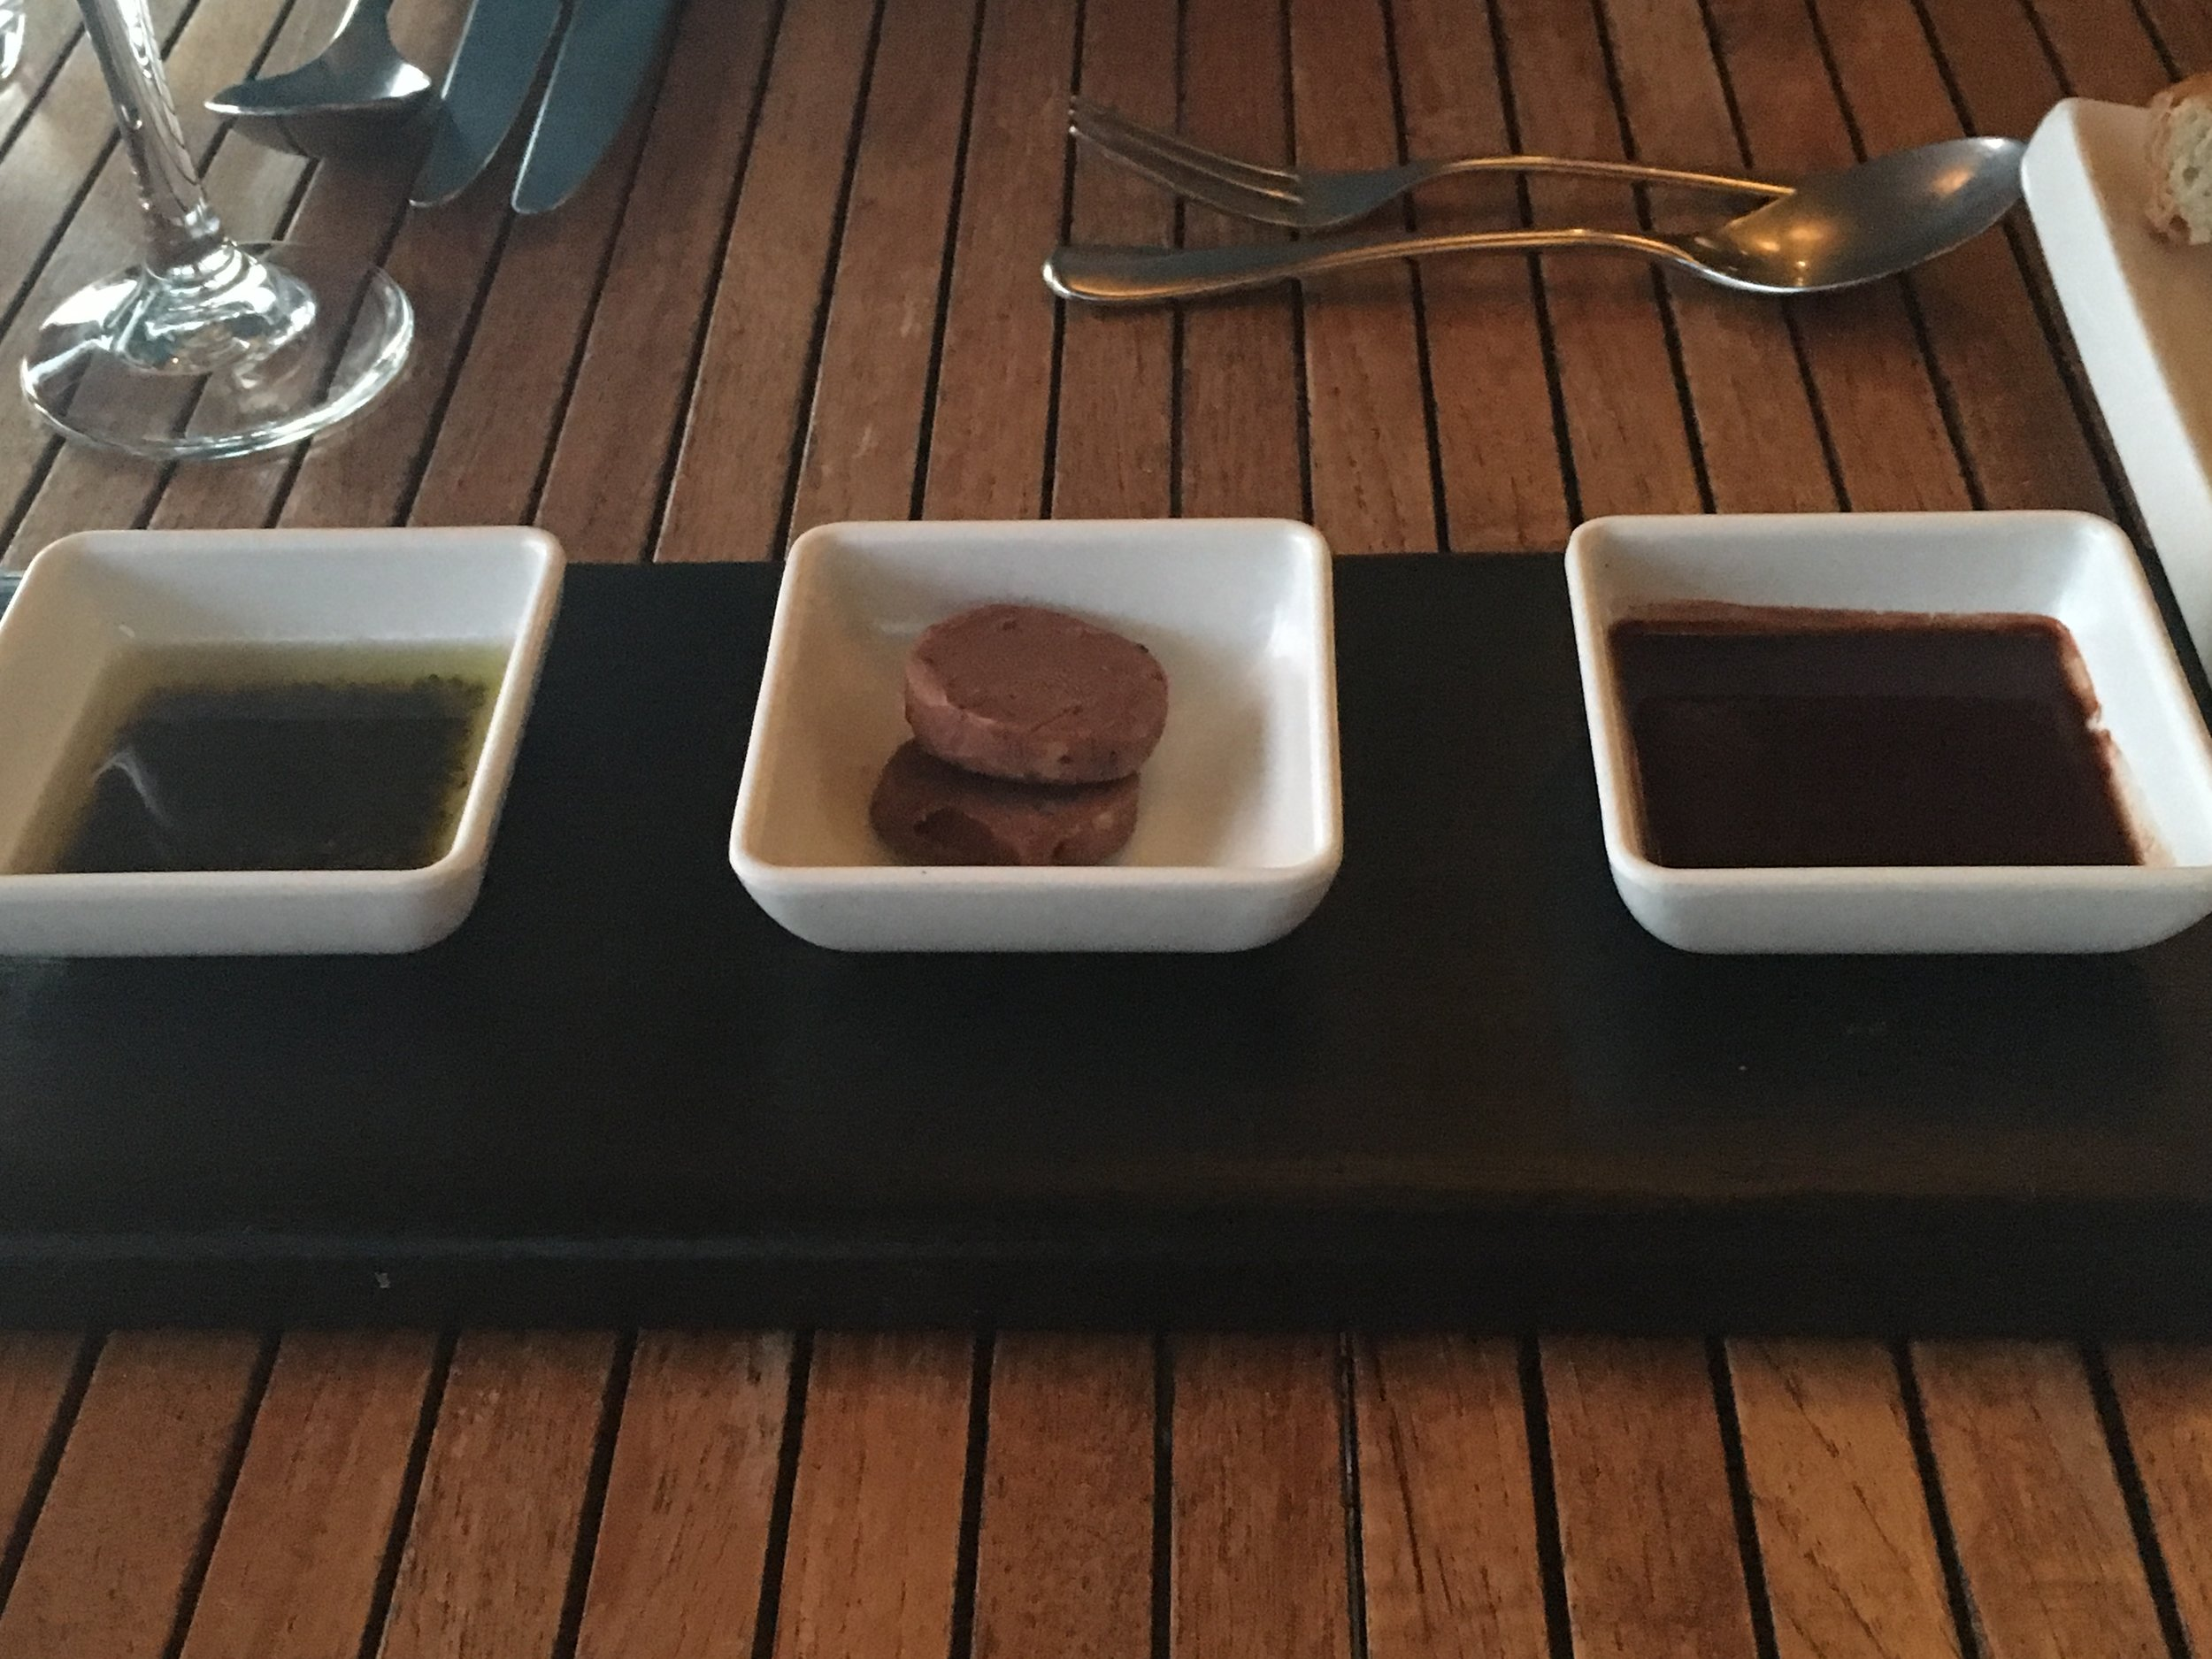 accompaniments for our bread: infused oil, chocolate butter, and ... chocolate